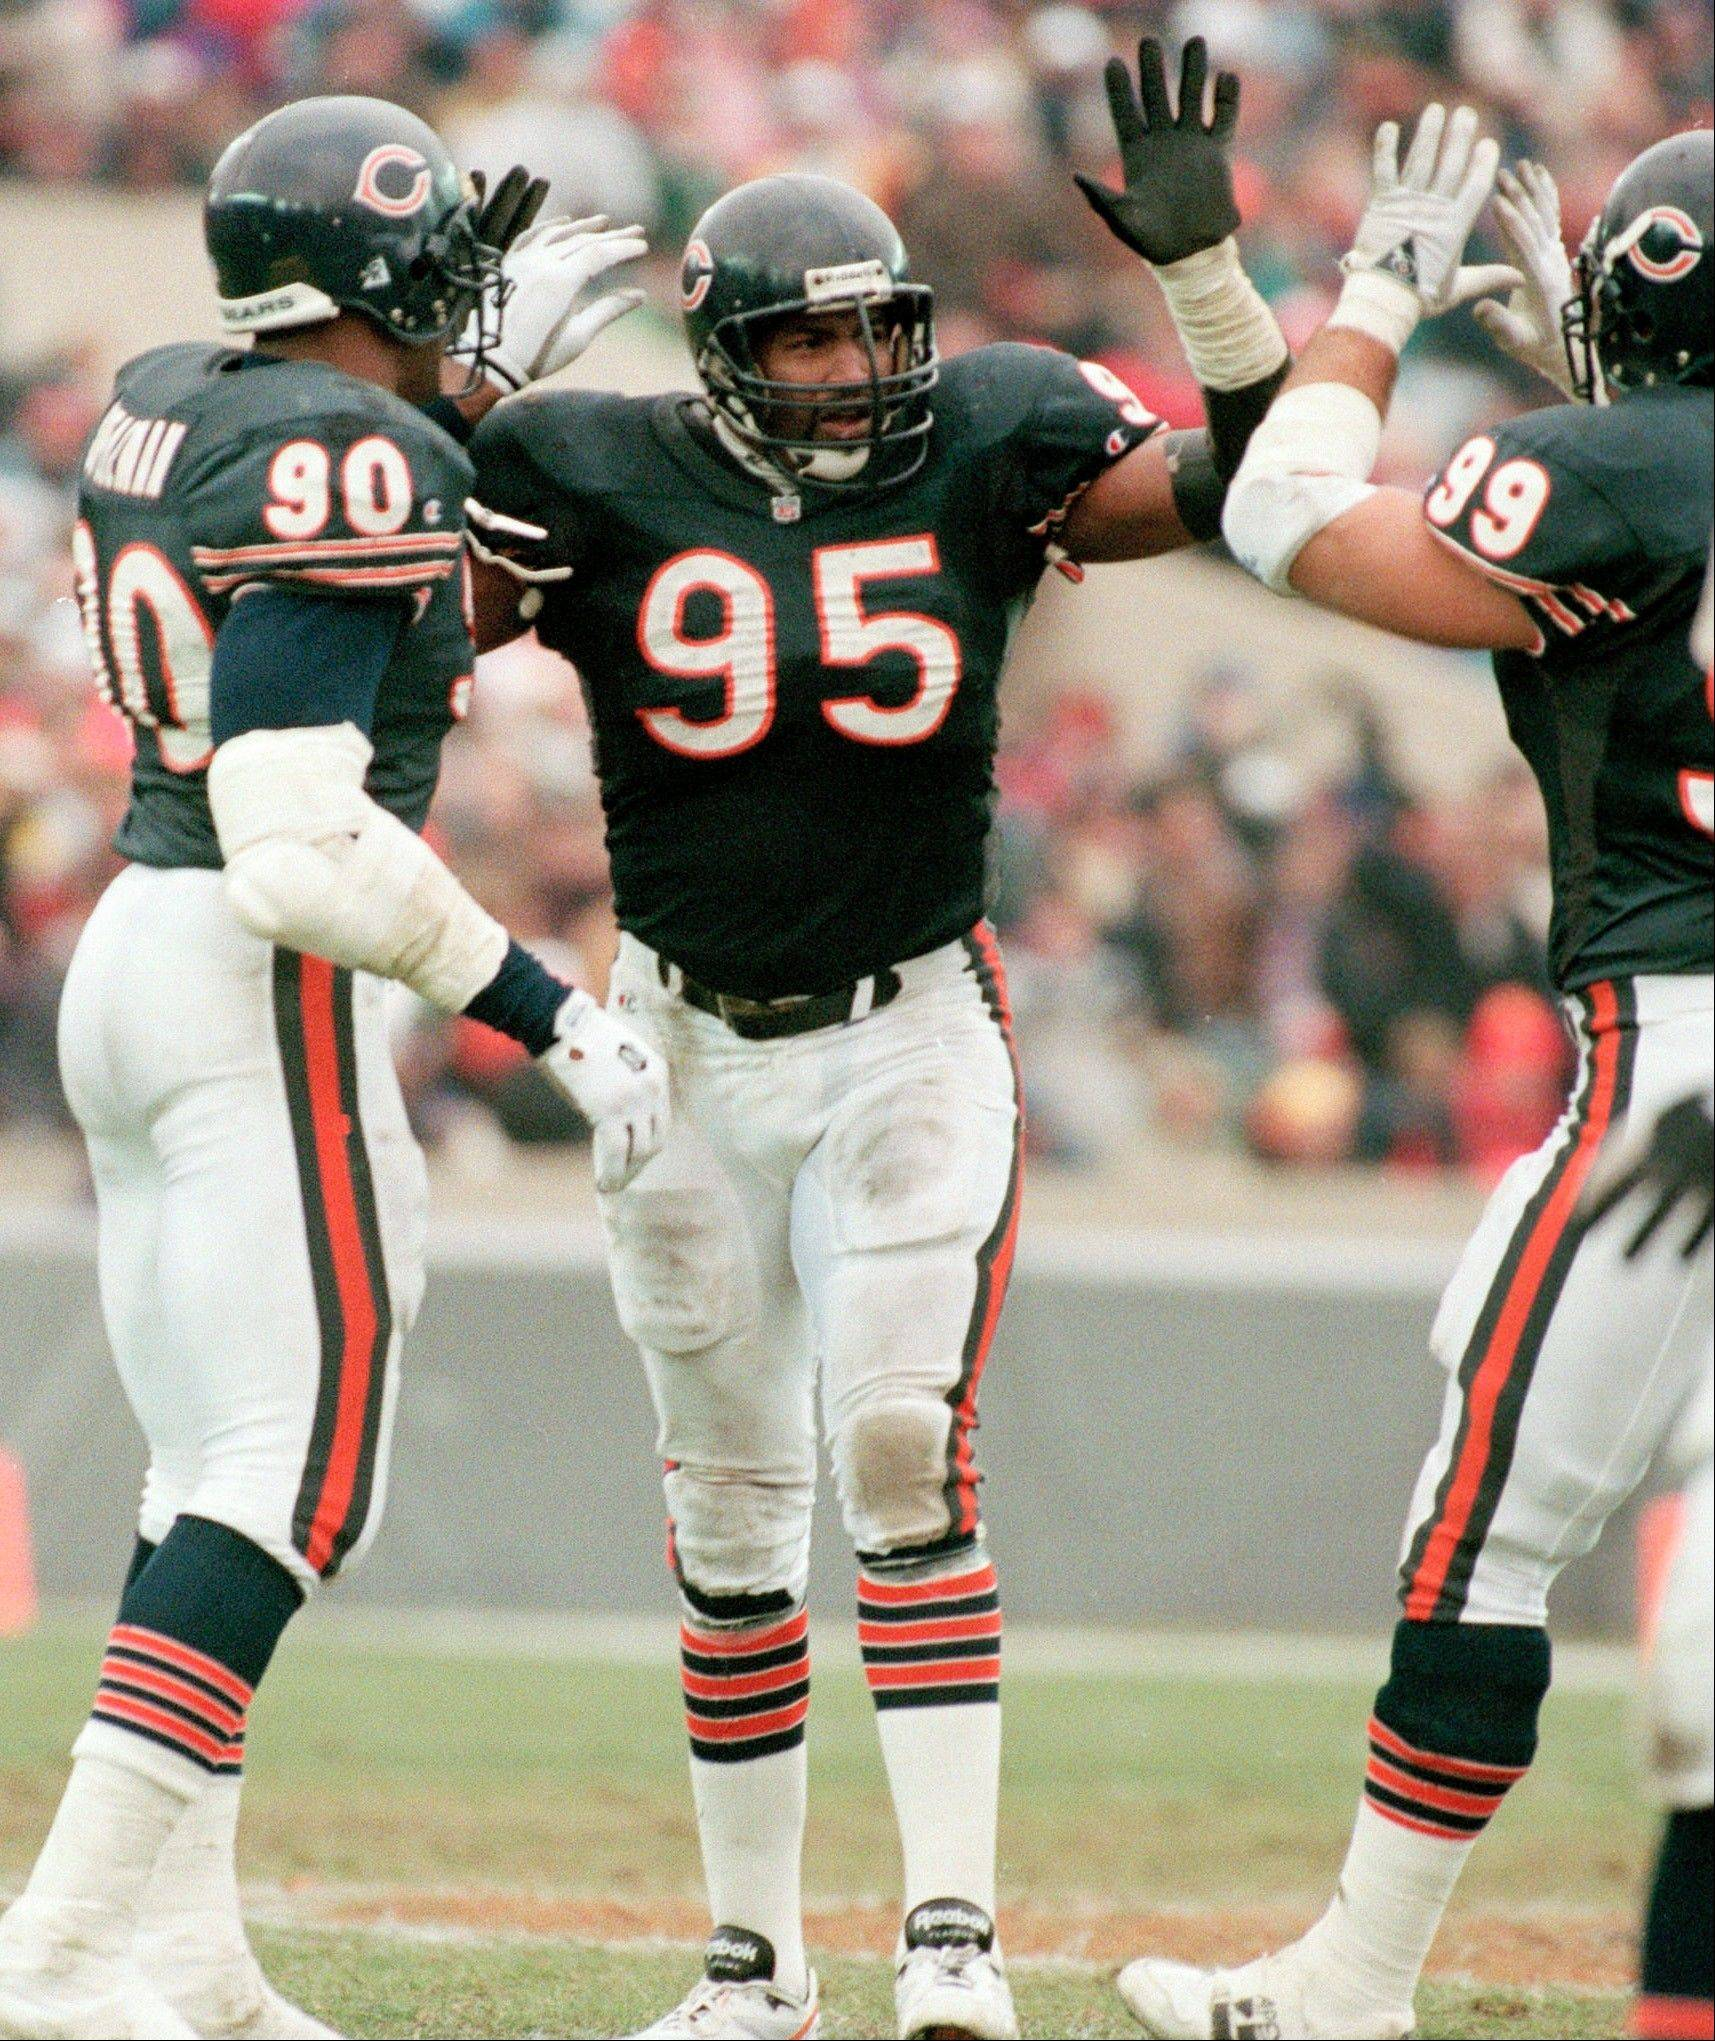 Richard Dent will finally become the third member of the legendary 1985 Chicago Bears defense to be inducted into the Hall of Fame on Saturday, Aug. 6, 2011, when he joins fellow ìMonsters of the Midwayî Dan Hampton and Mike Singletary, an honor that his teammates and coaches say is long overdue.